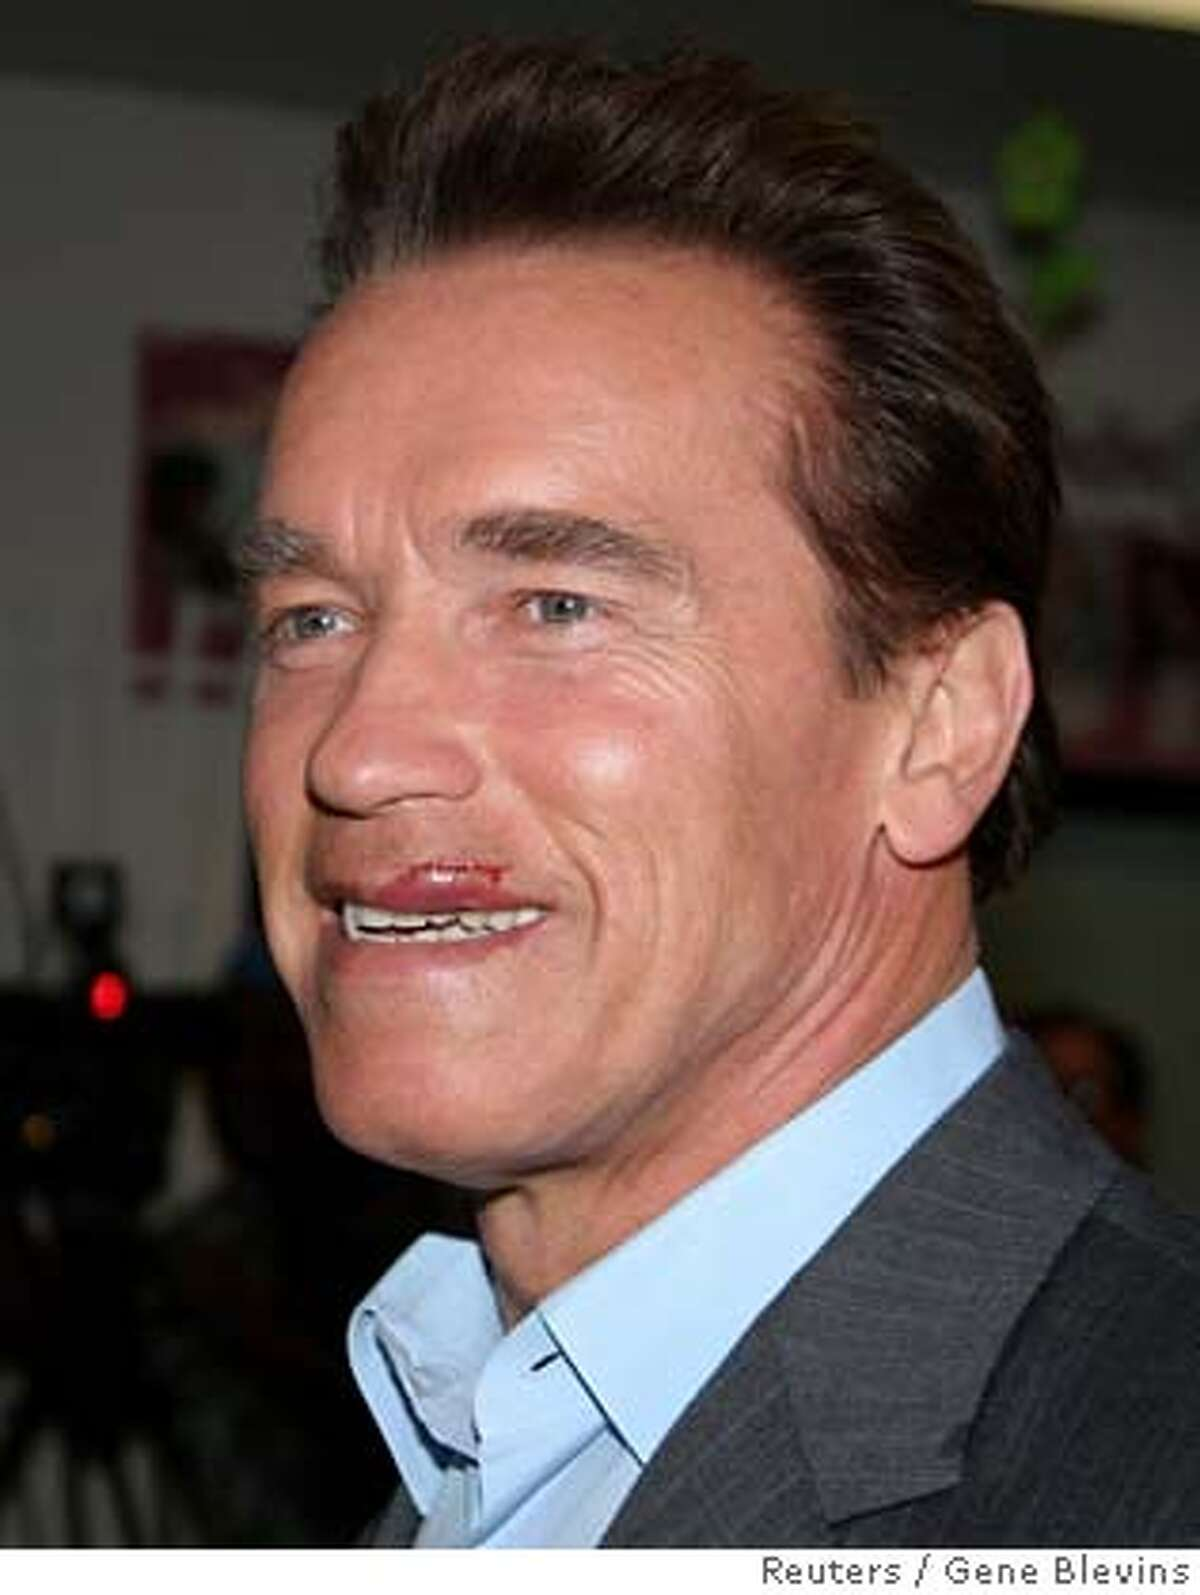 California governor Arnold Schwarzenegger smiles during a news conference at the Northeast Valley Health Corp in North Hollywood, California January 9, 2006. Schwarzenegger was back at work Monday after suffering a minor motorcycle accident that required a hospital visit to receive 15 stitches to treat a cut lip, his office said. REUTERS/Gene Blevins 0